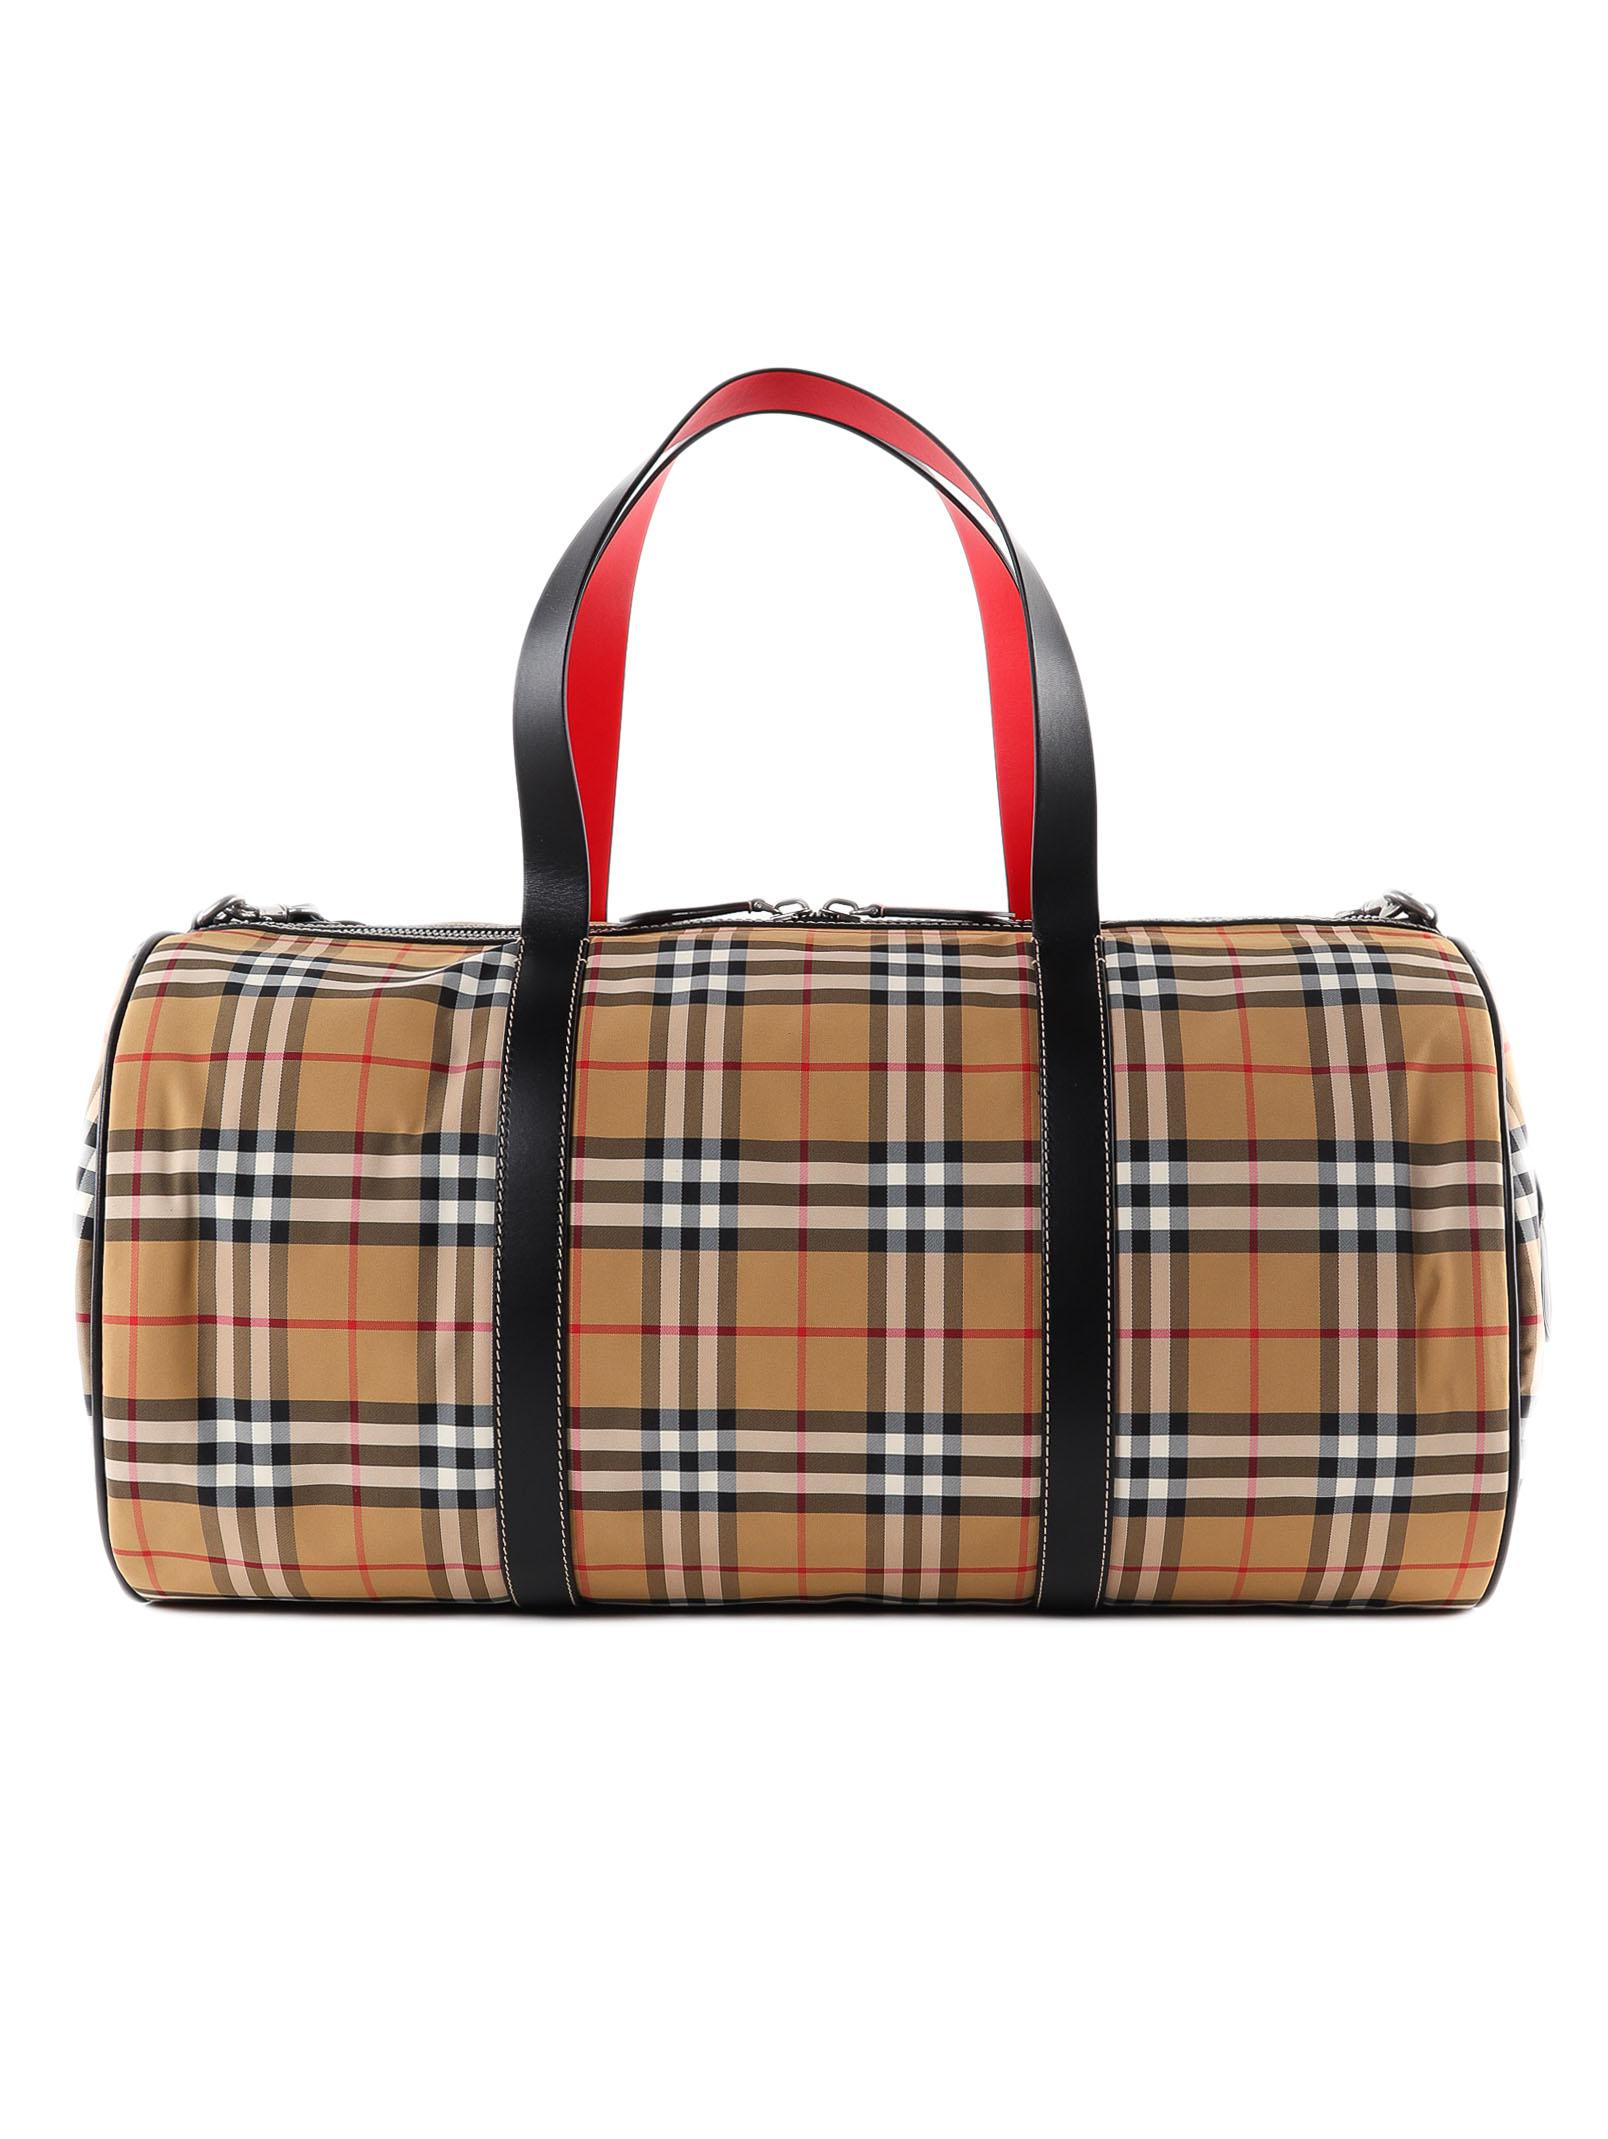 437d6cc62ec8 Lyst - Burberry Lg Kennedy Duffle for Men